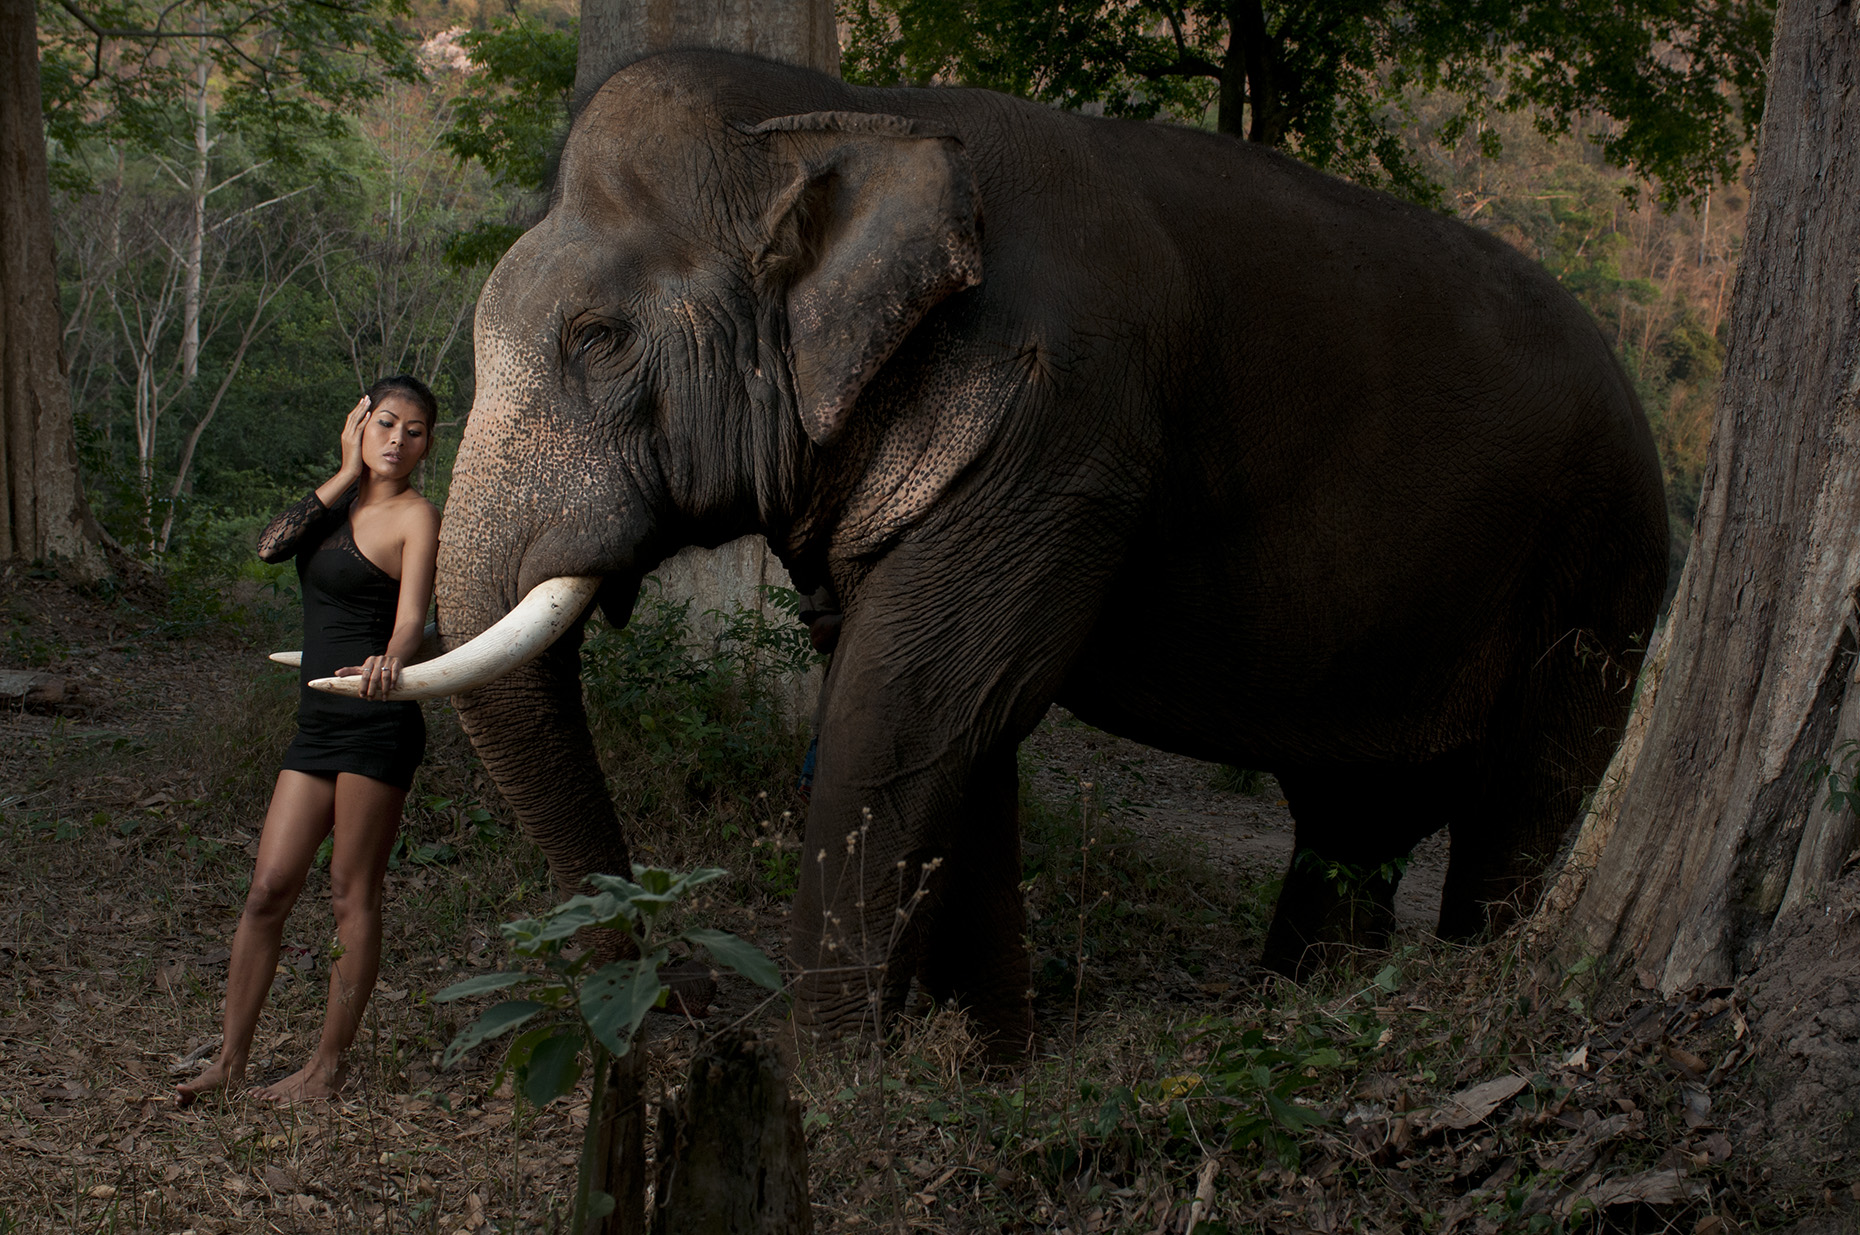 Nang and Elephant